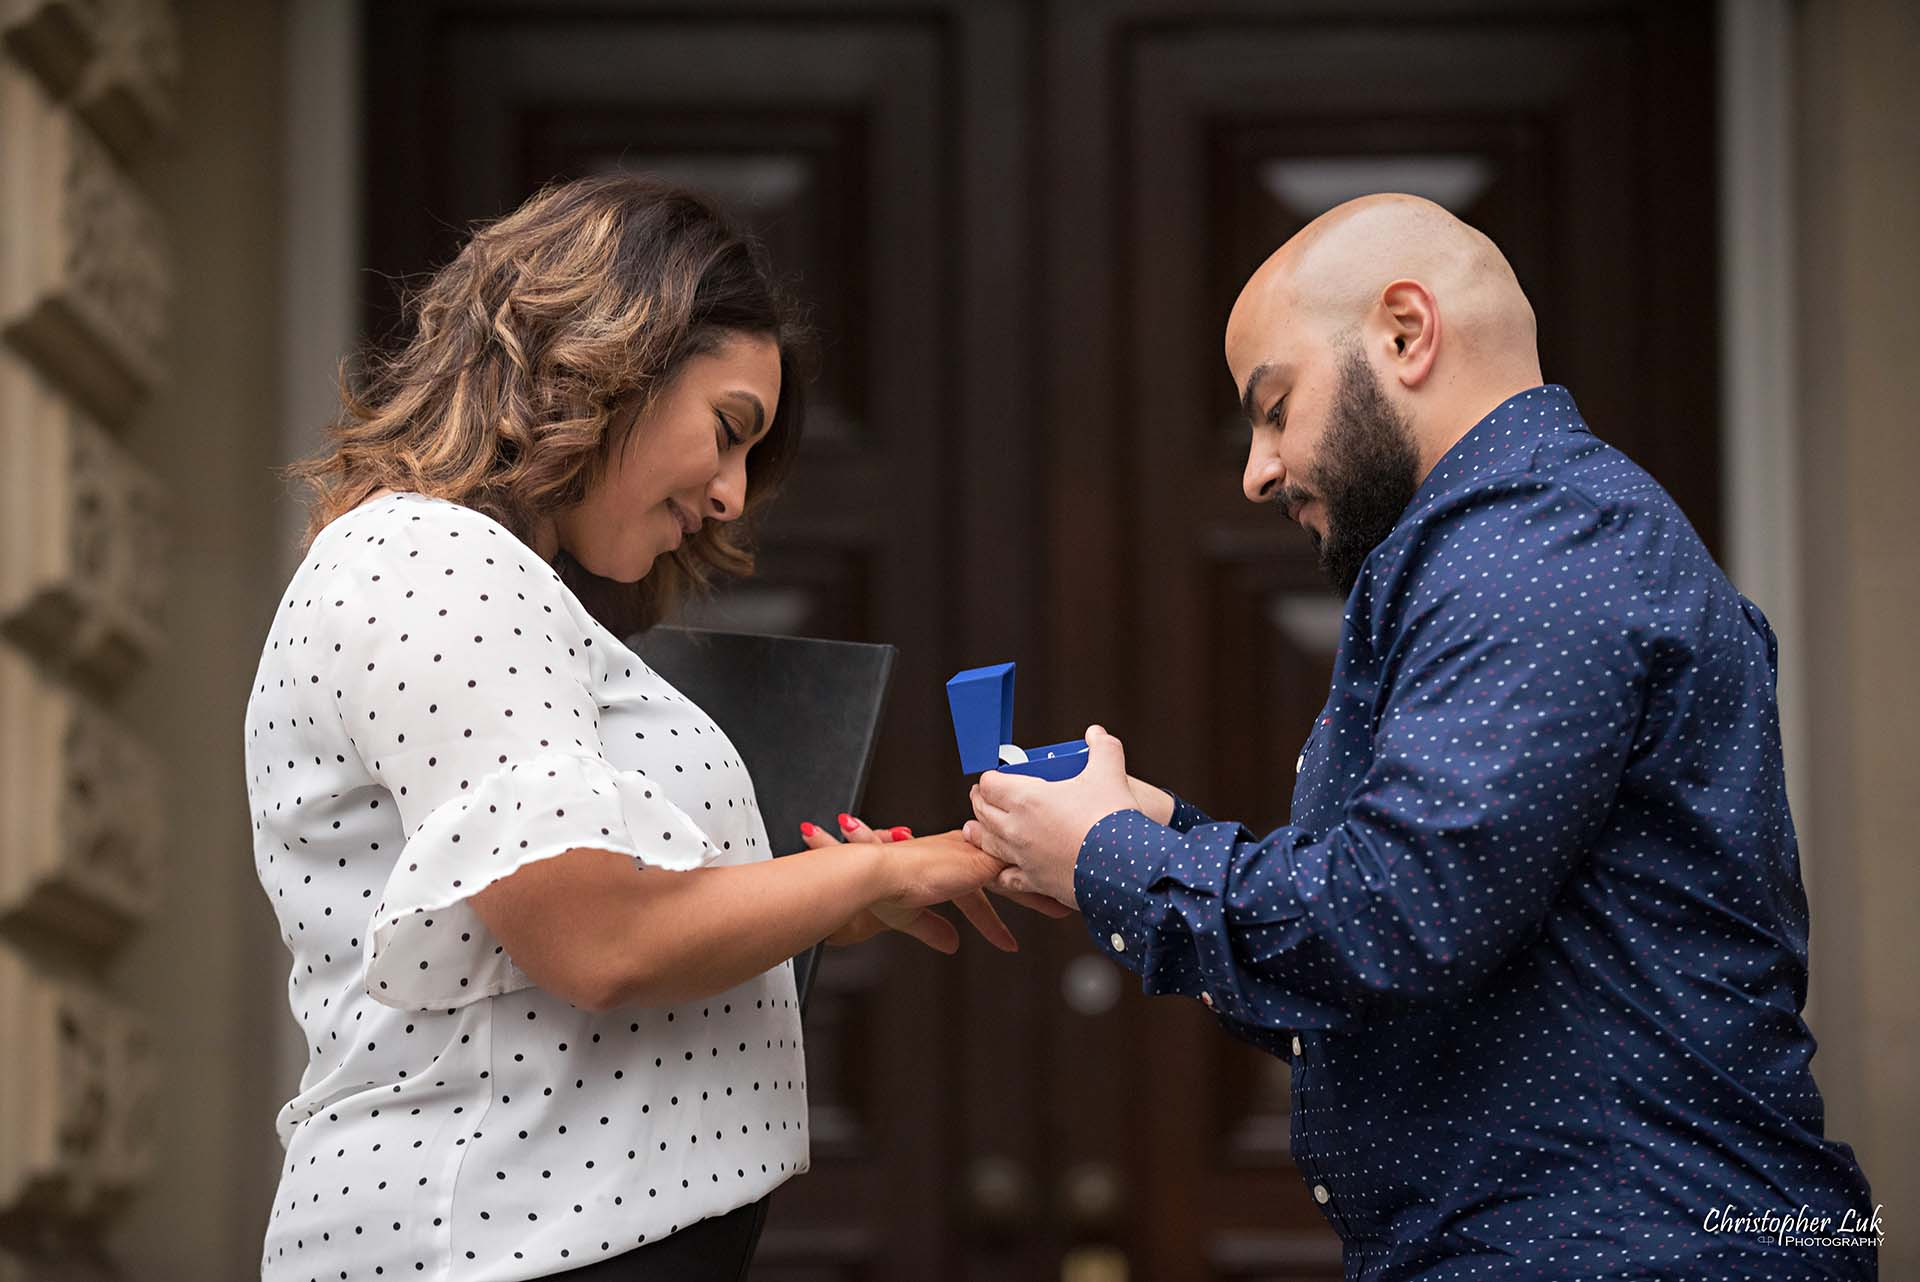 Christopher Luk Toronto Wedding Photographer - Toronto Osgoode Hall Surprise Proposal Engaged Engagement Will You Marry Me She Said Yes Natural Candid Photojournalistic - Fiancé Fiancée Bride Groom Ring Put On